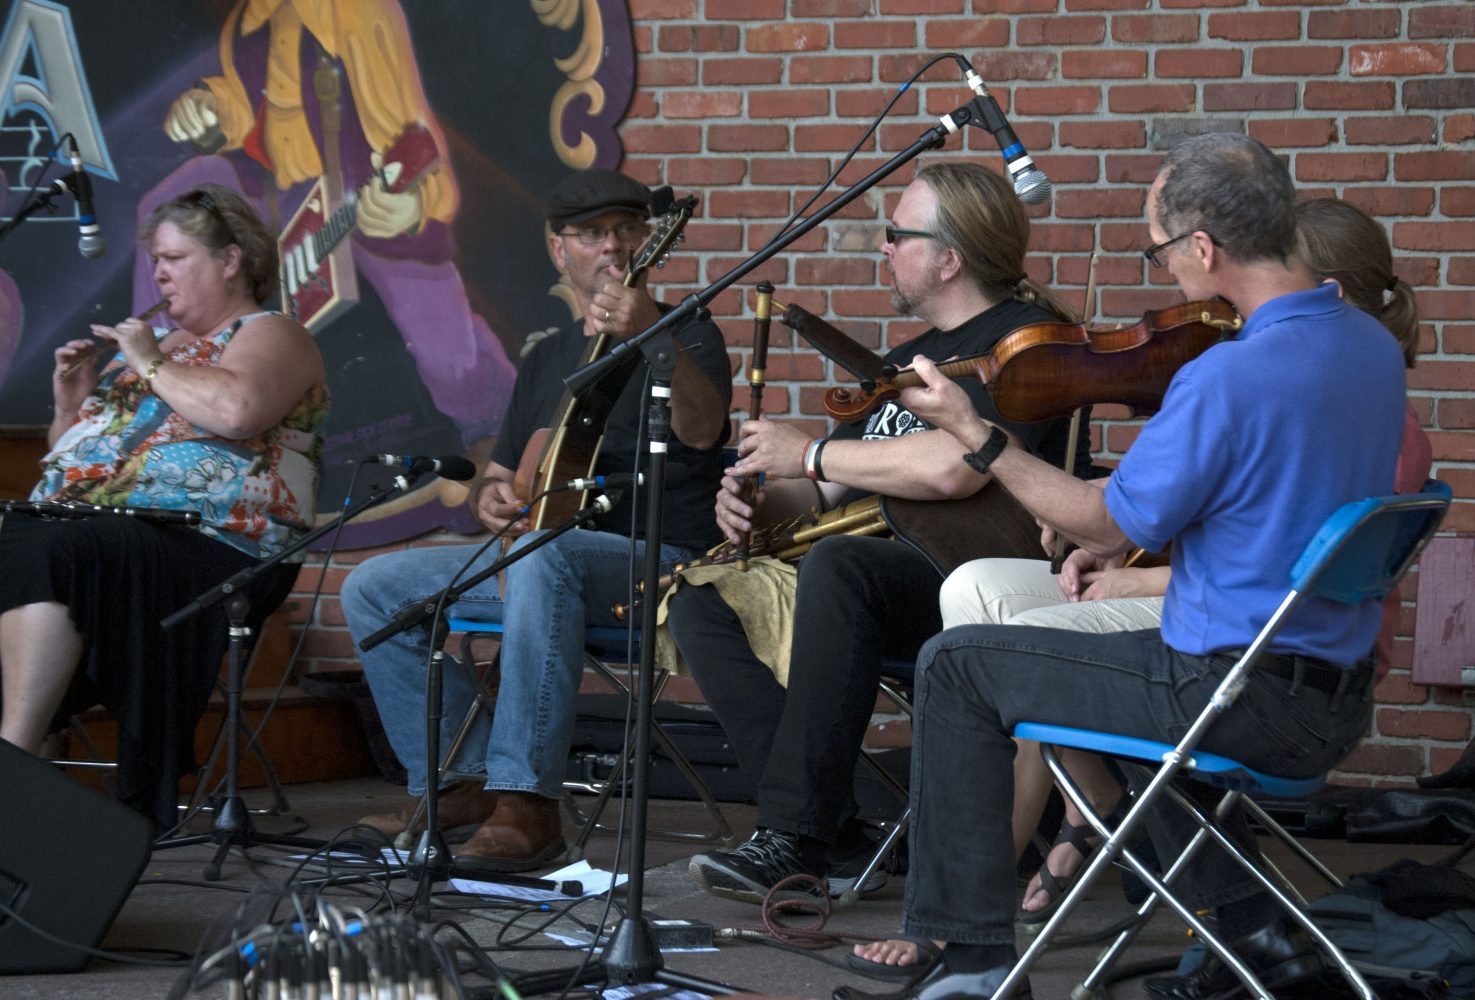 A local band specializing in Irish music performs as the Gainesville community celebrates culture and diversity at the Viva Europe Festival Sunday.